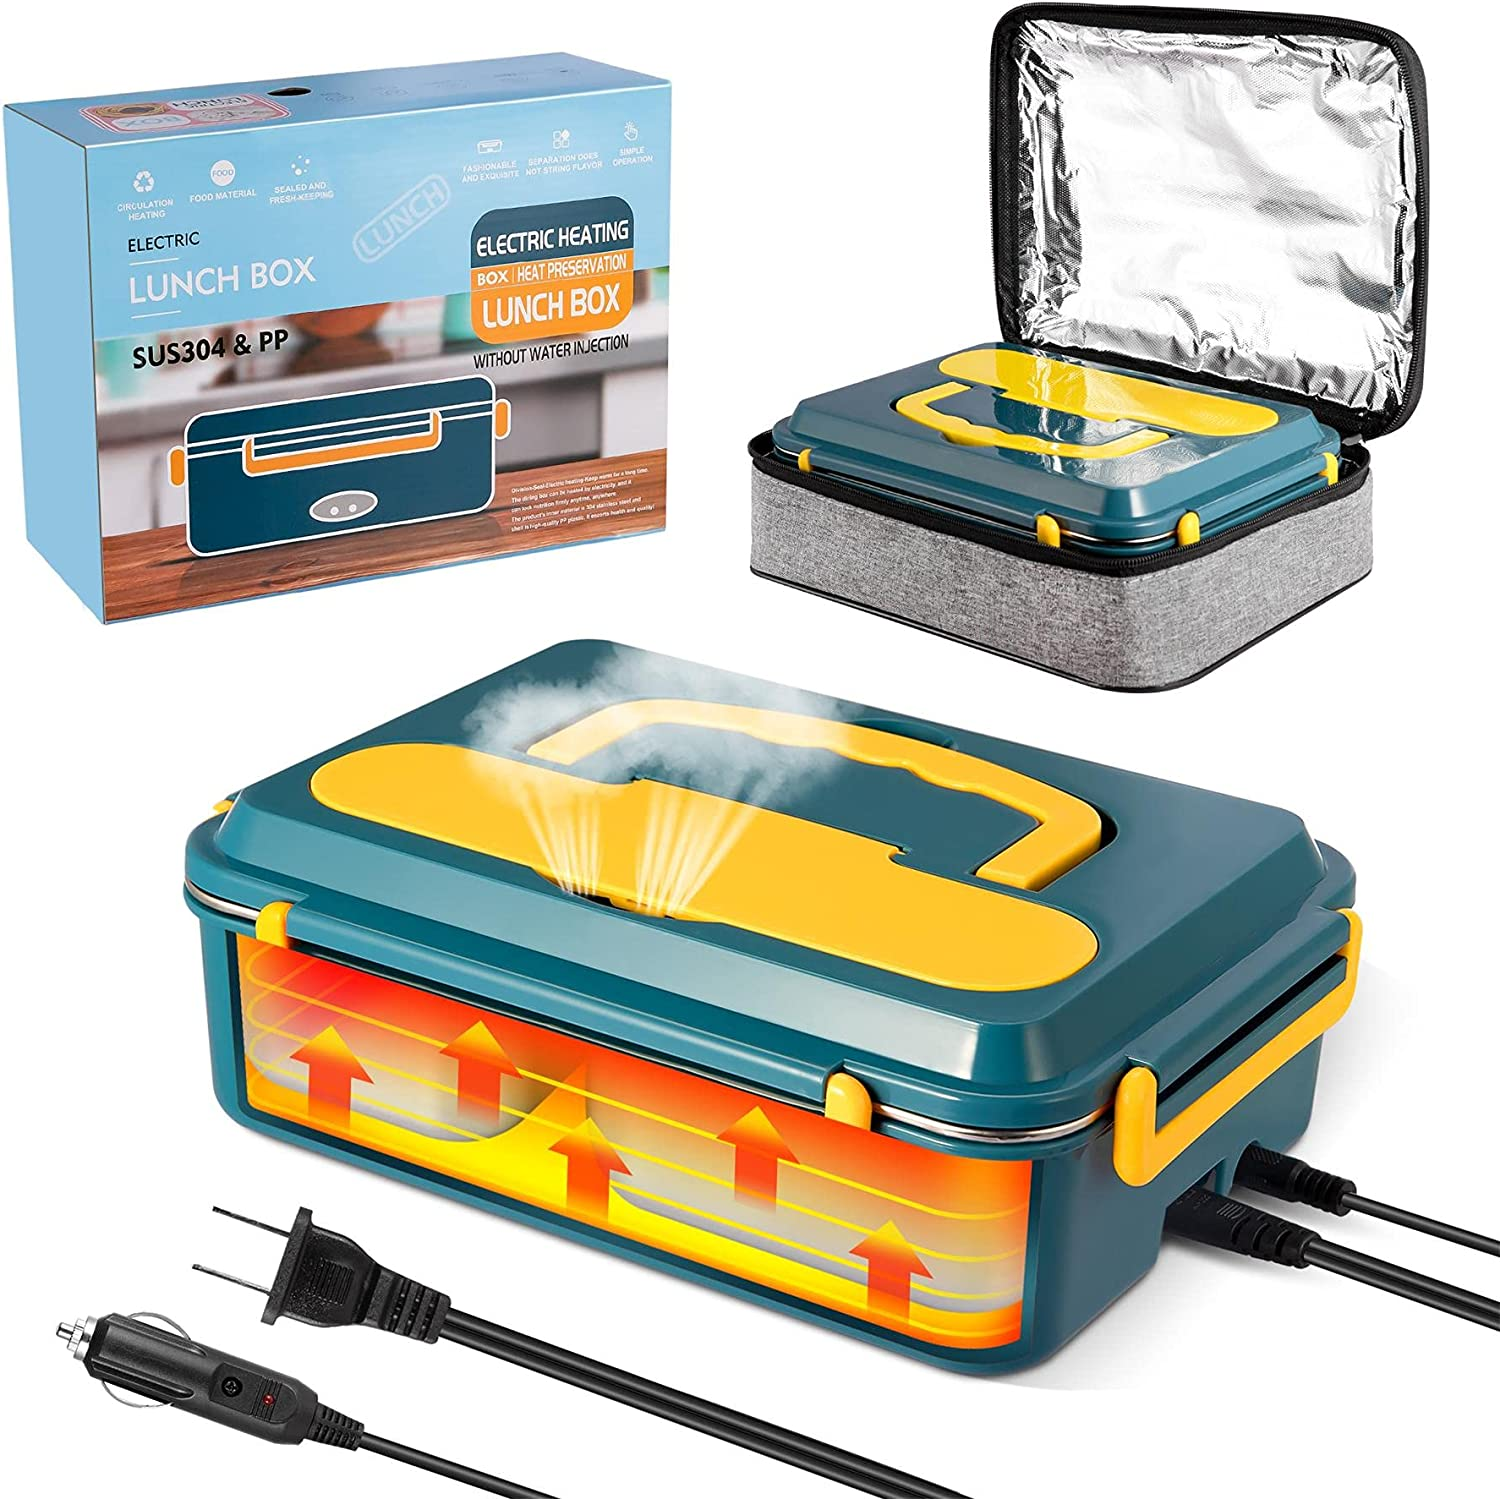 Electric Lunch Box for Max 54% OFF Car Home Upgrade Heated and Our shop OFFers the best service